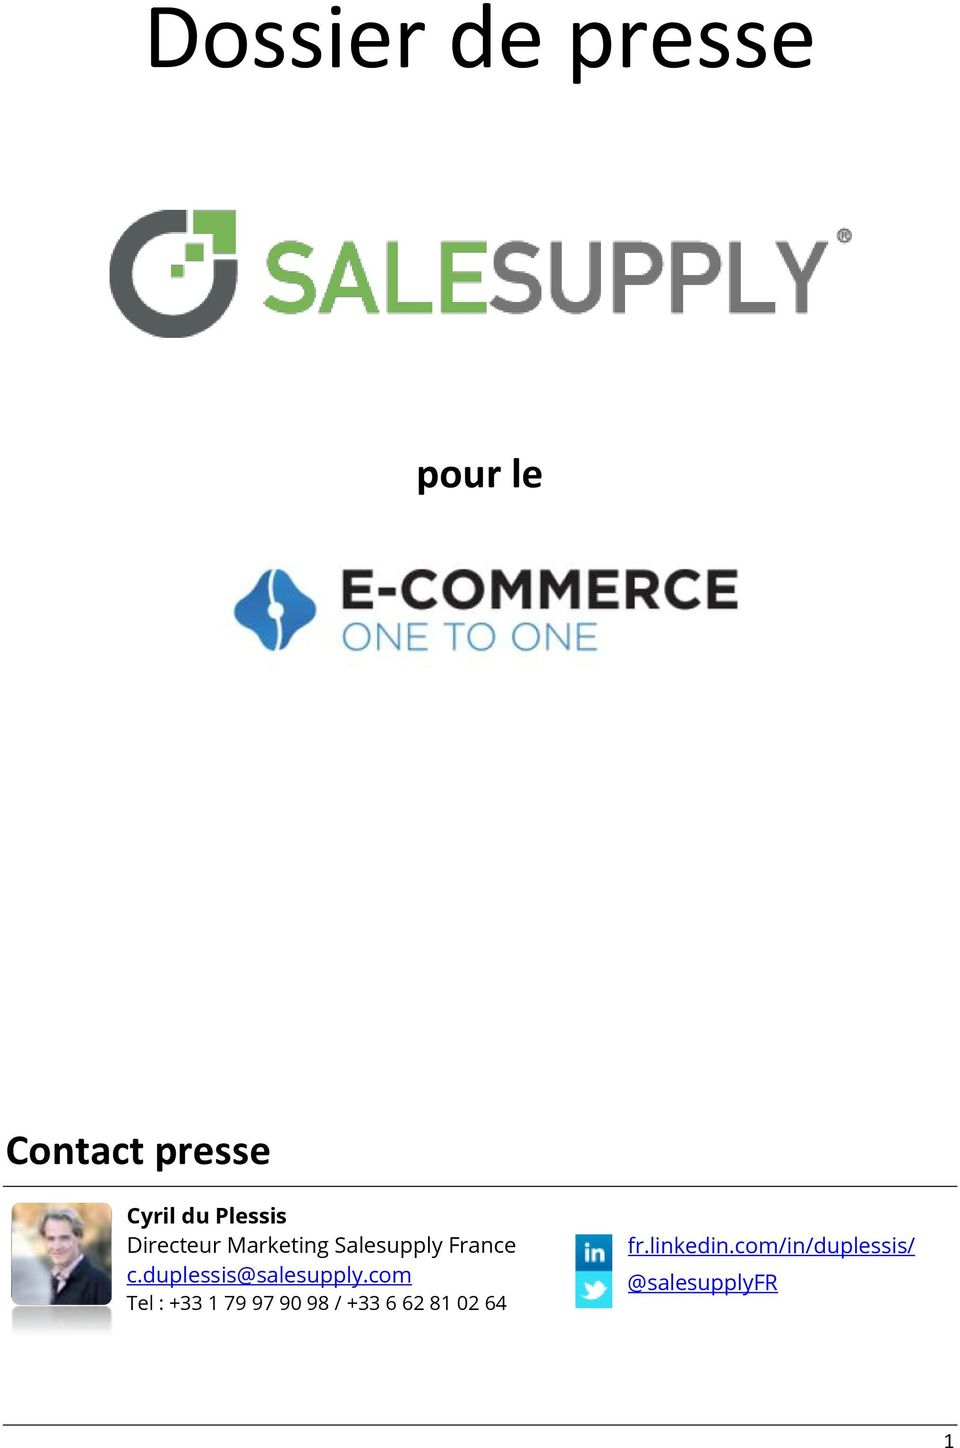 duplessis@salesupply.